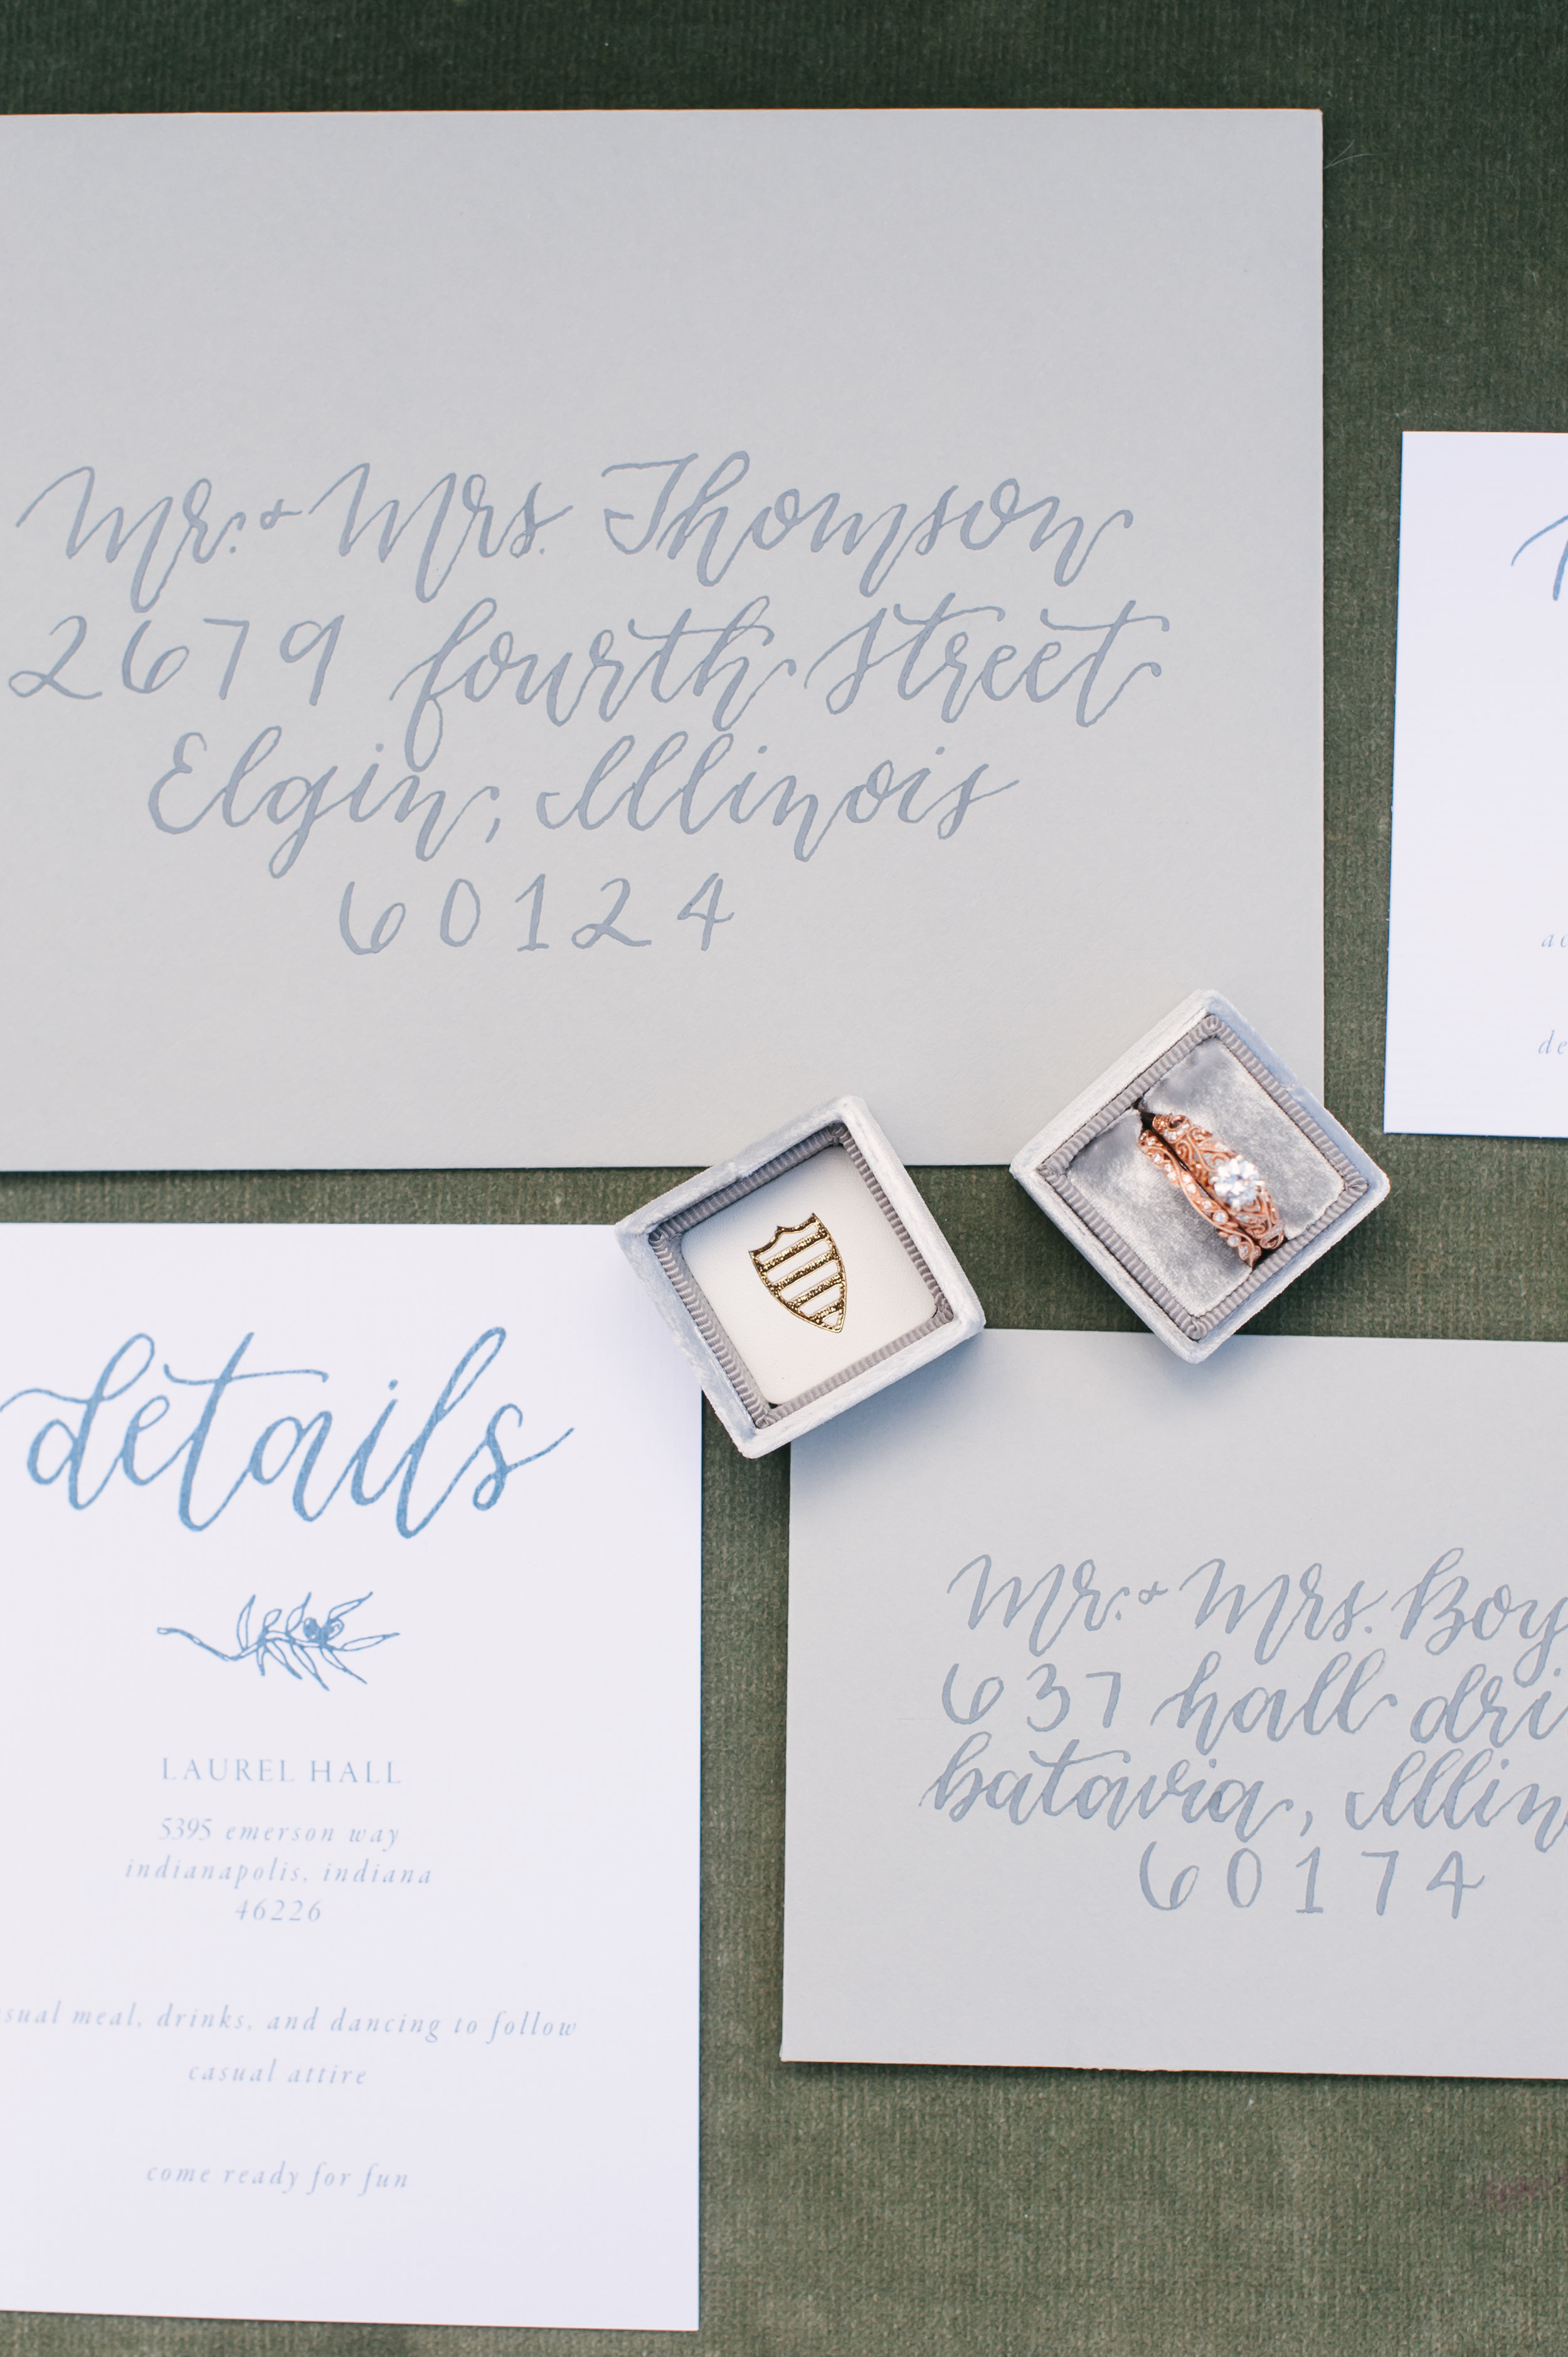 Wedding Invitations - Custom invitations are the perfect way to make your event stand out. Elegant & whimsical, an invitation suite that perfectly matches the feel of your wedding will take your event and add a new level of luxury.